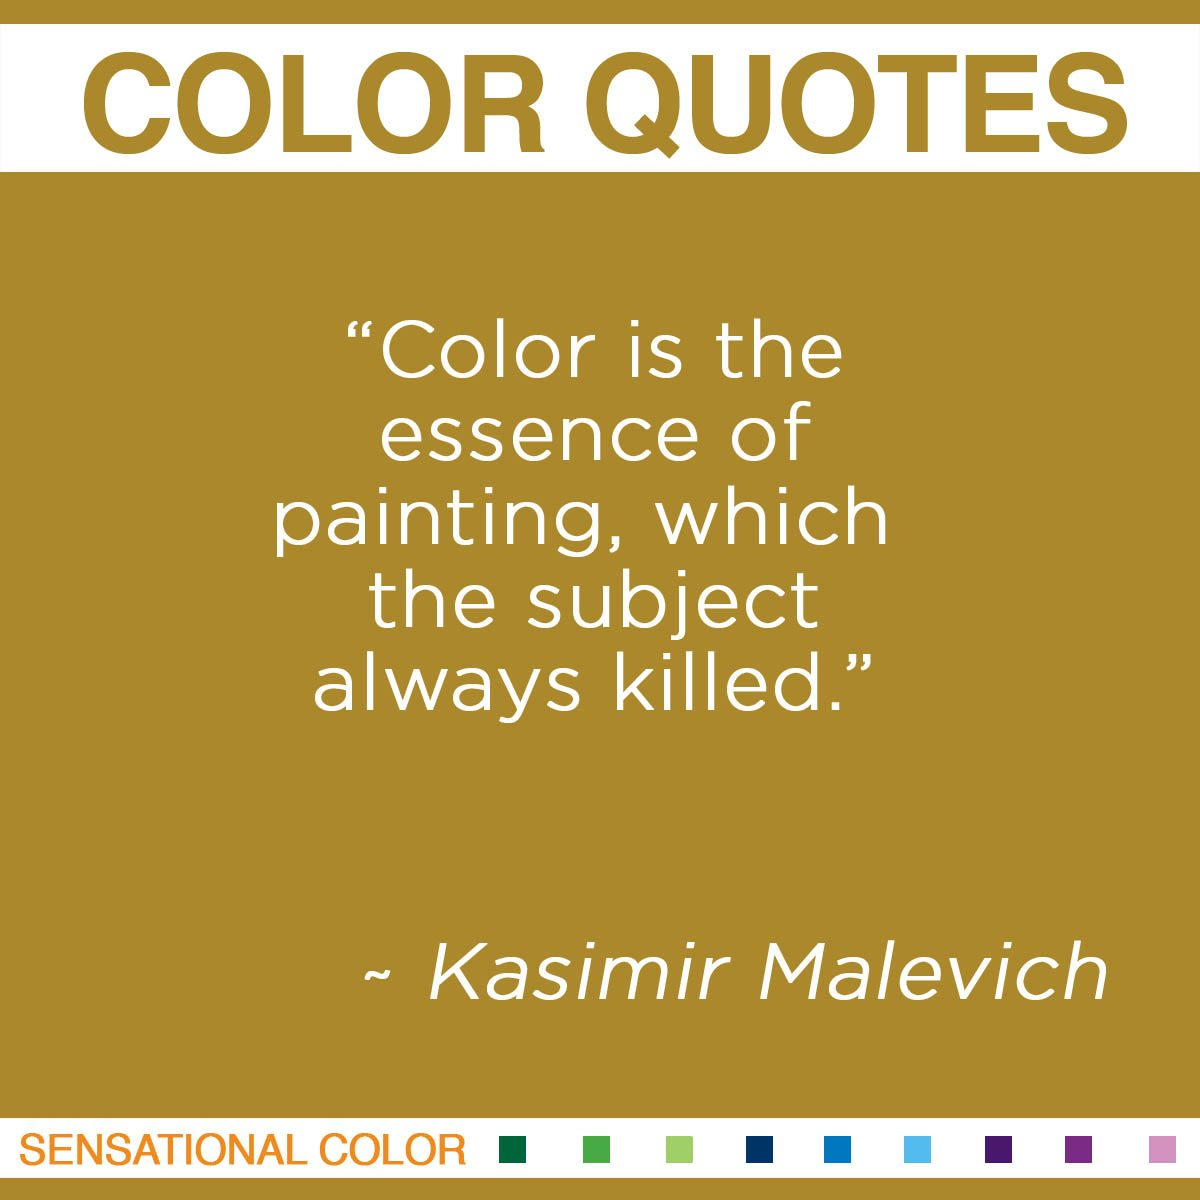 """​""Color is the essence of painting, which the subject always killed."" - Kasimir Malevich ""Color is the essence of painting, which the subject always killed."" -- Kasimir Malevich, Ukrainian Cubist painter, 1878-1935"""